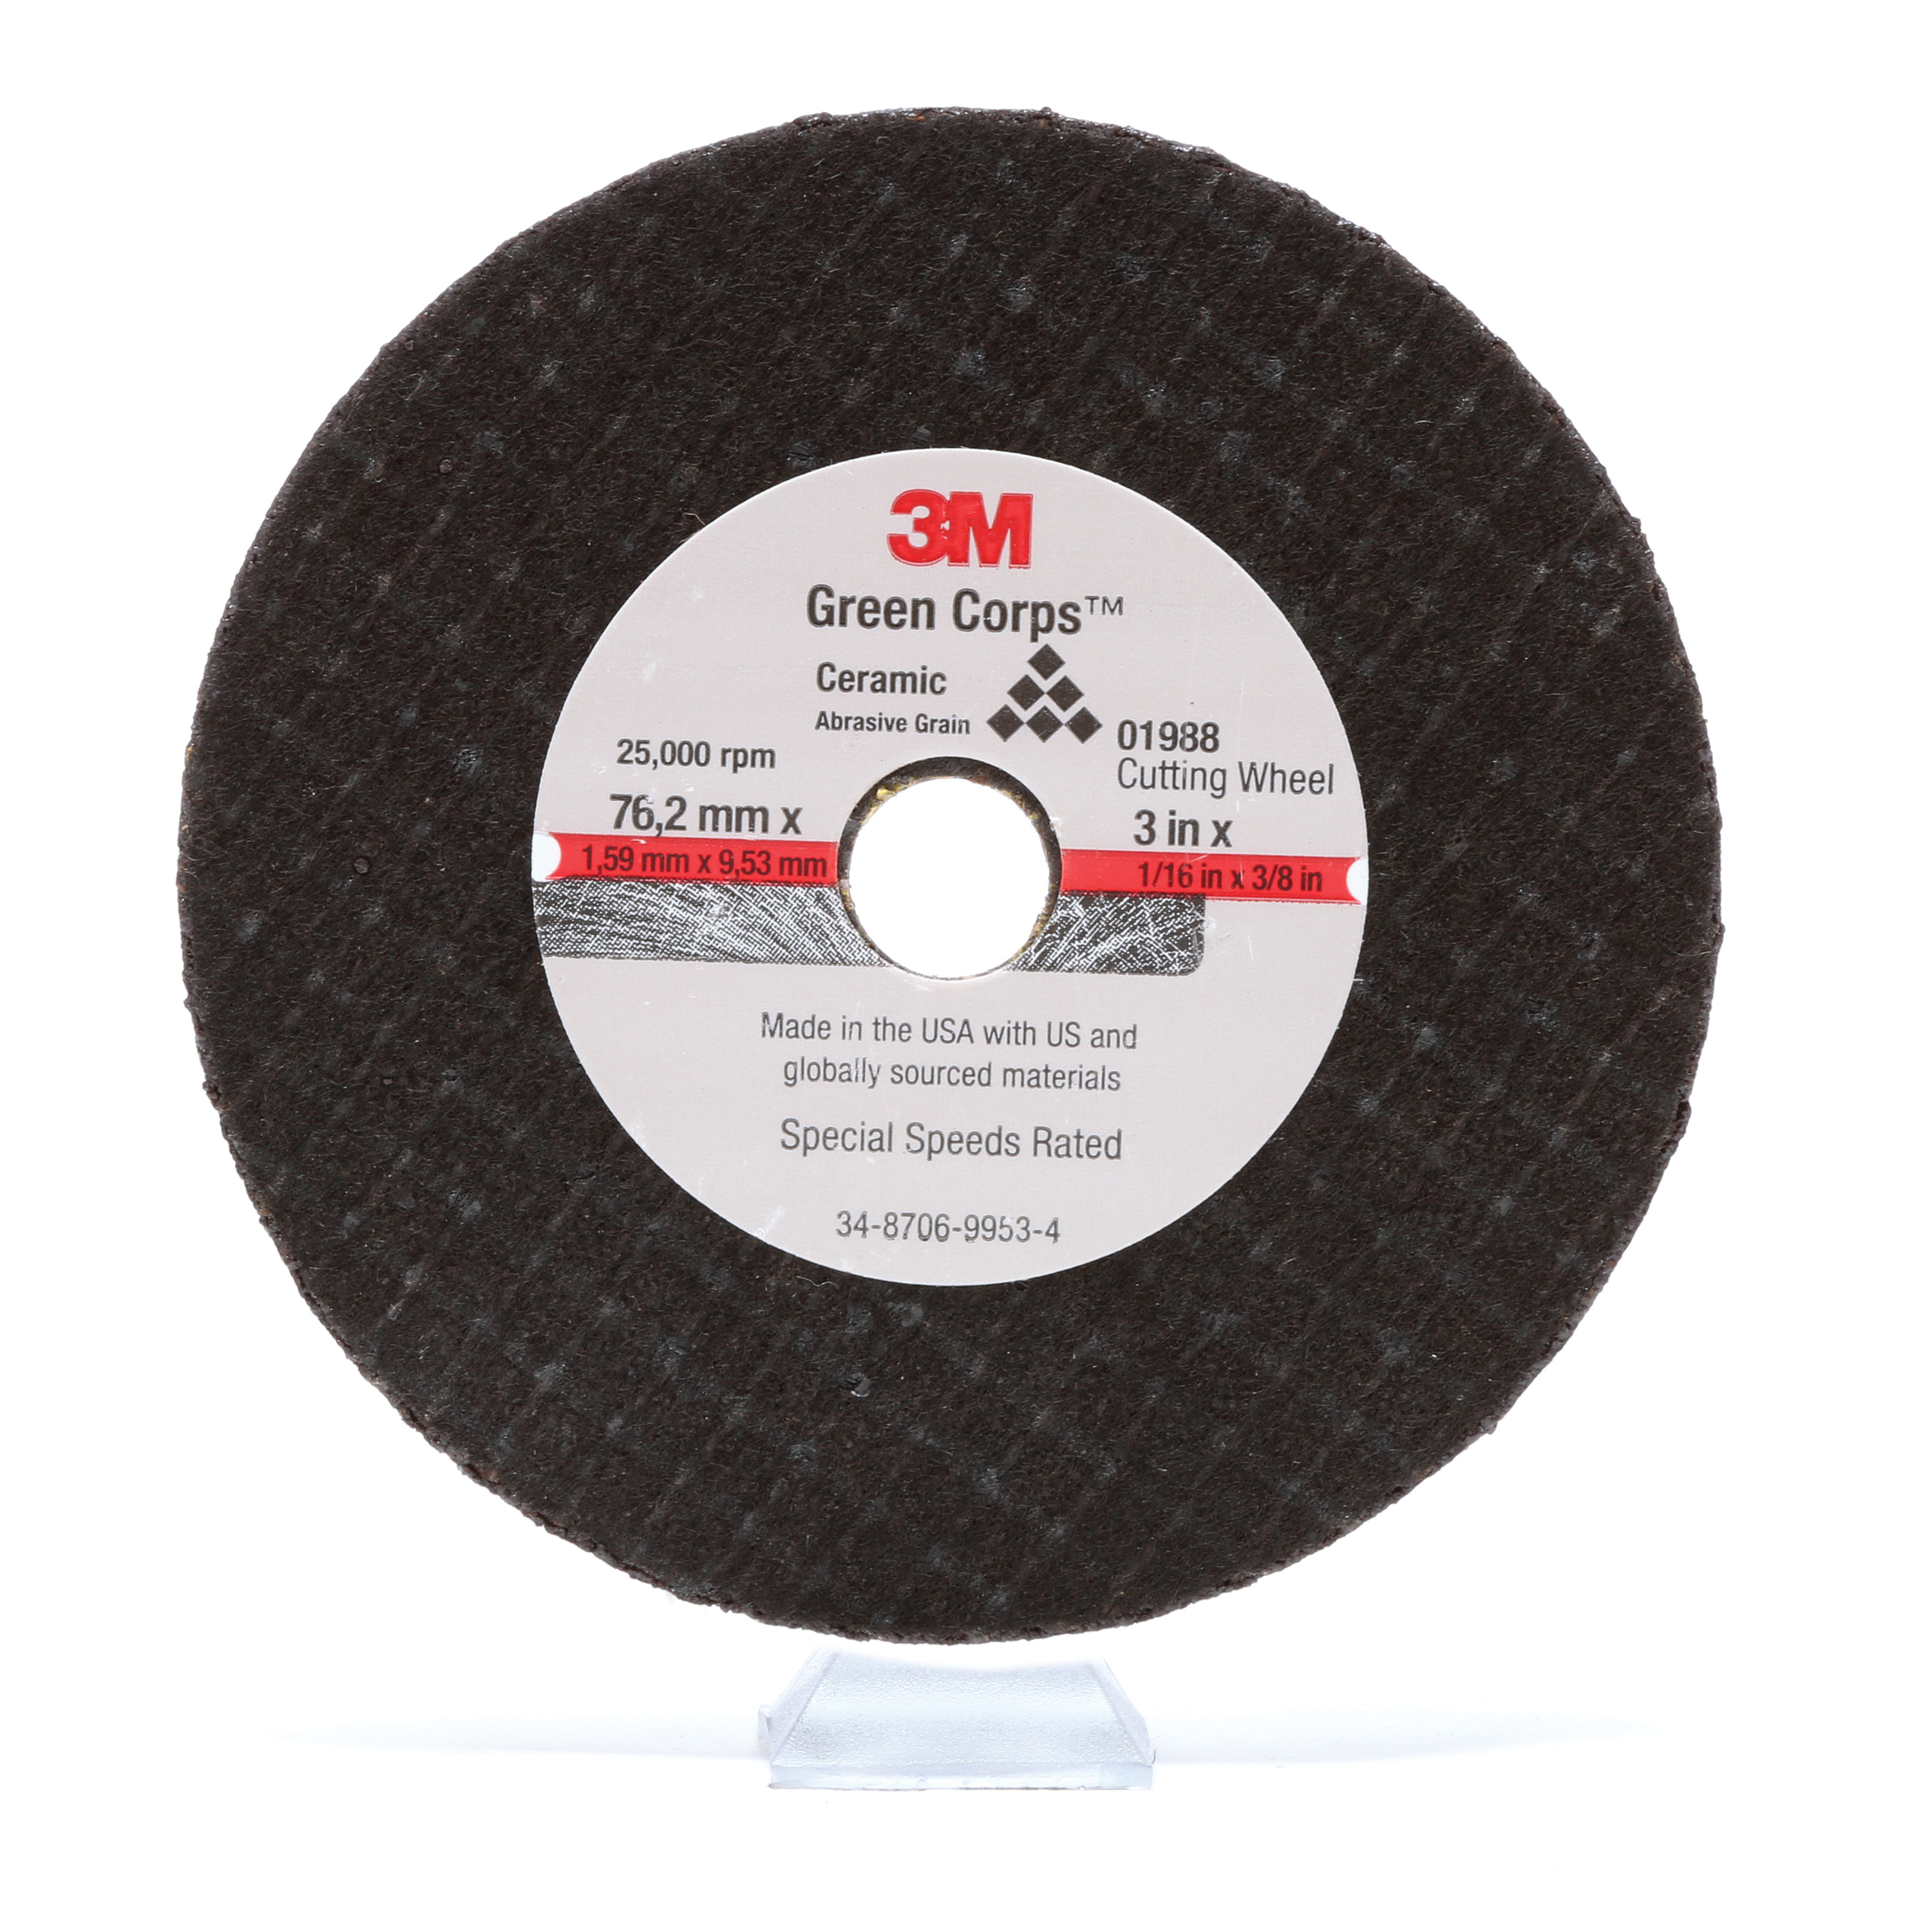 3M™ 051131-01988 Economy Cut-Off Wheel, 3 in Dia x 1/16 in THK, 3/8 in Center Hole, Aluminum Oxide Abrasive